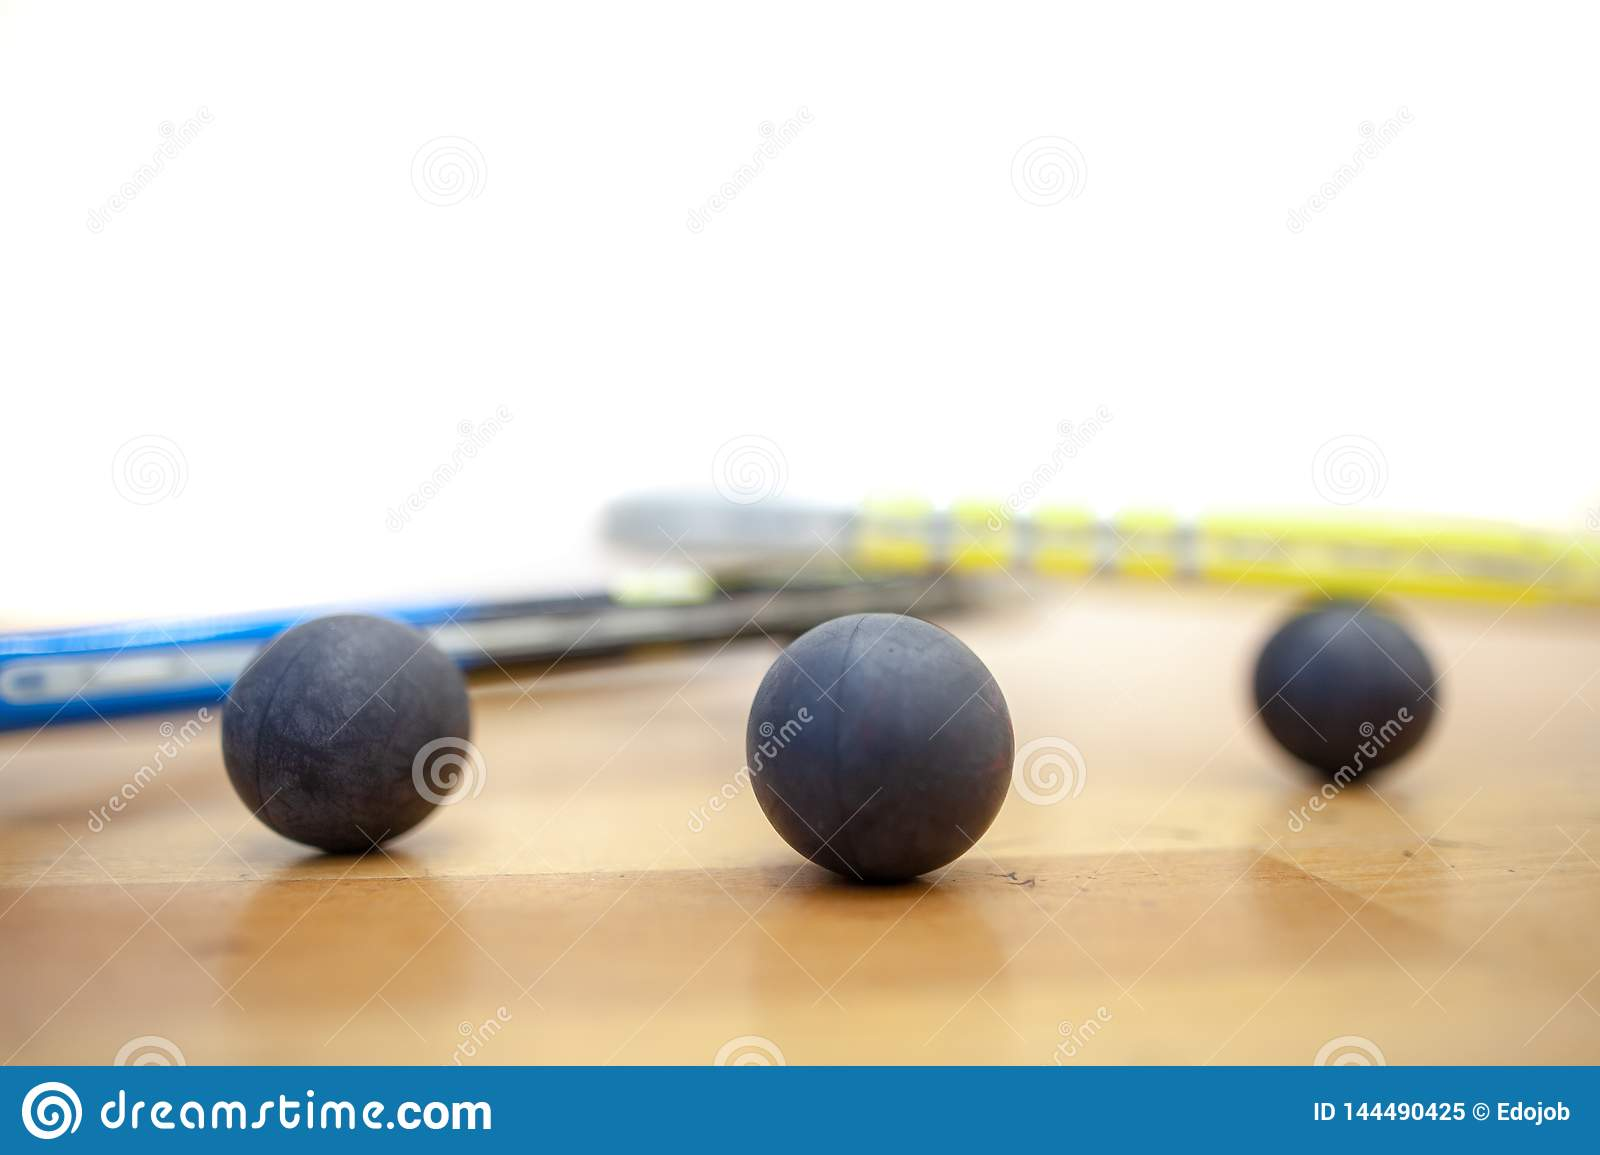 Squash balls scattered on the squash court at the tournament professional player